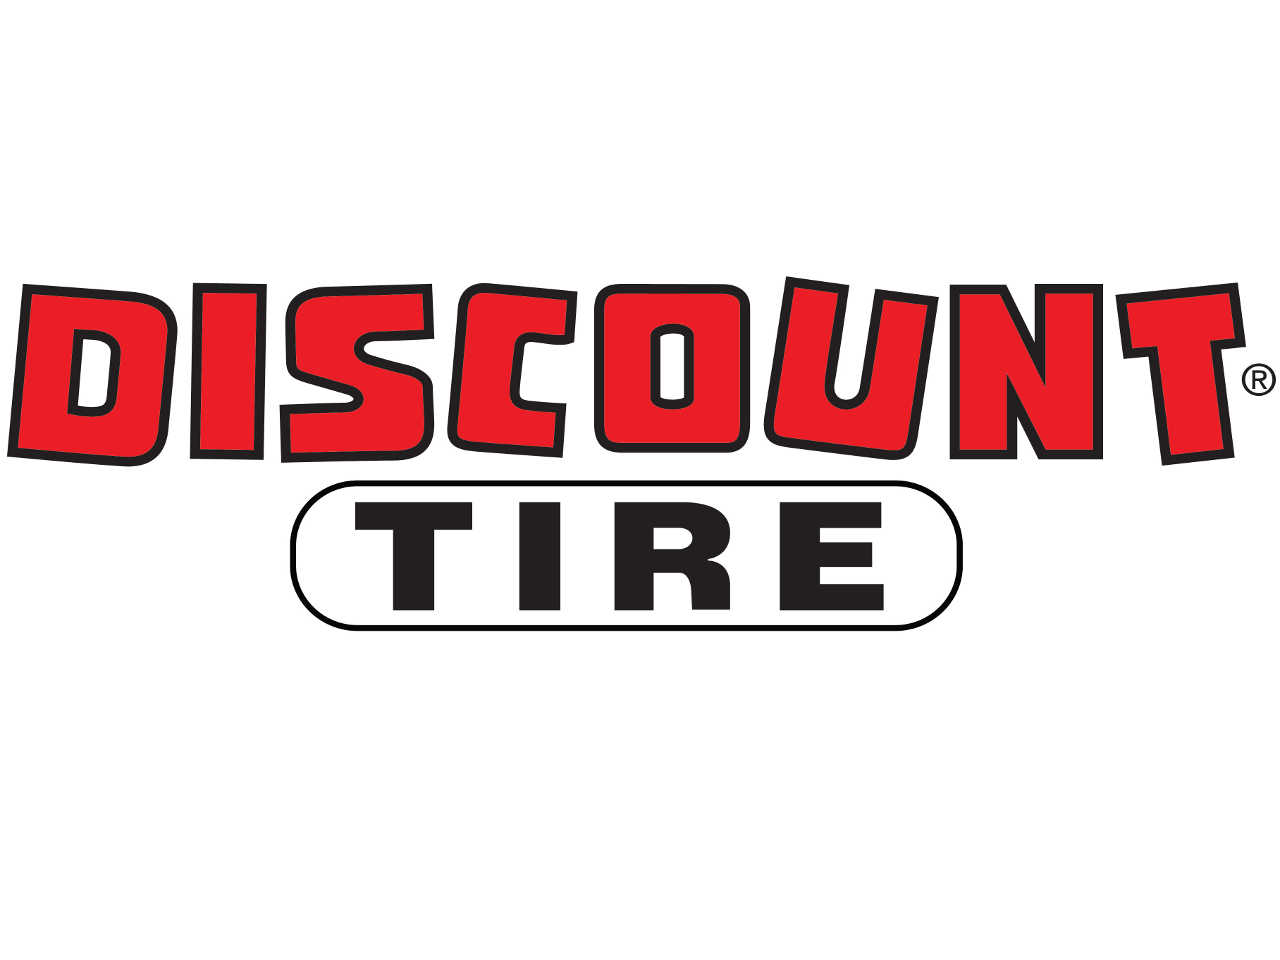 Purchase four wheels and tires at America's Tire and receive a free $60 Visa prepaid gift card by mail.5/5(13).